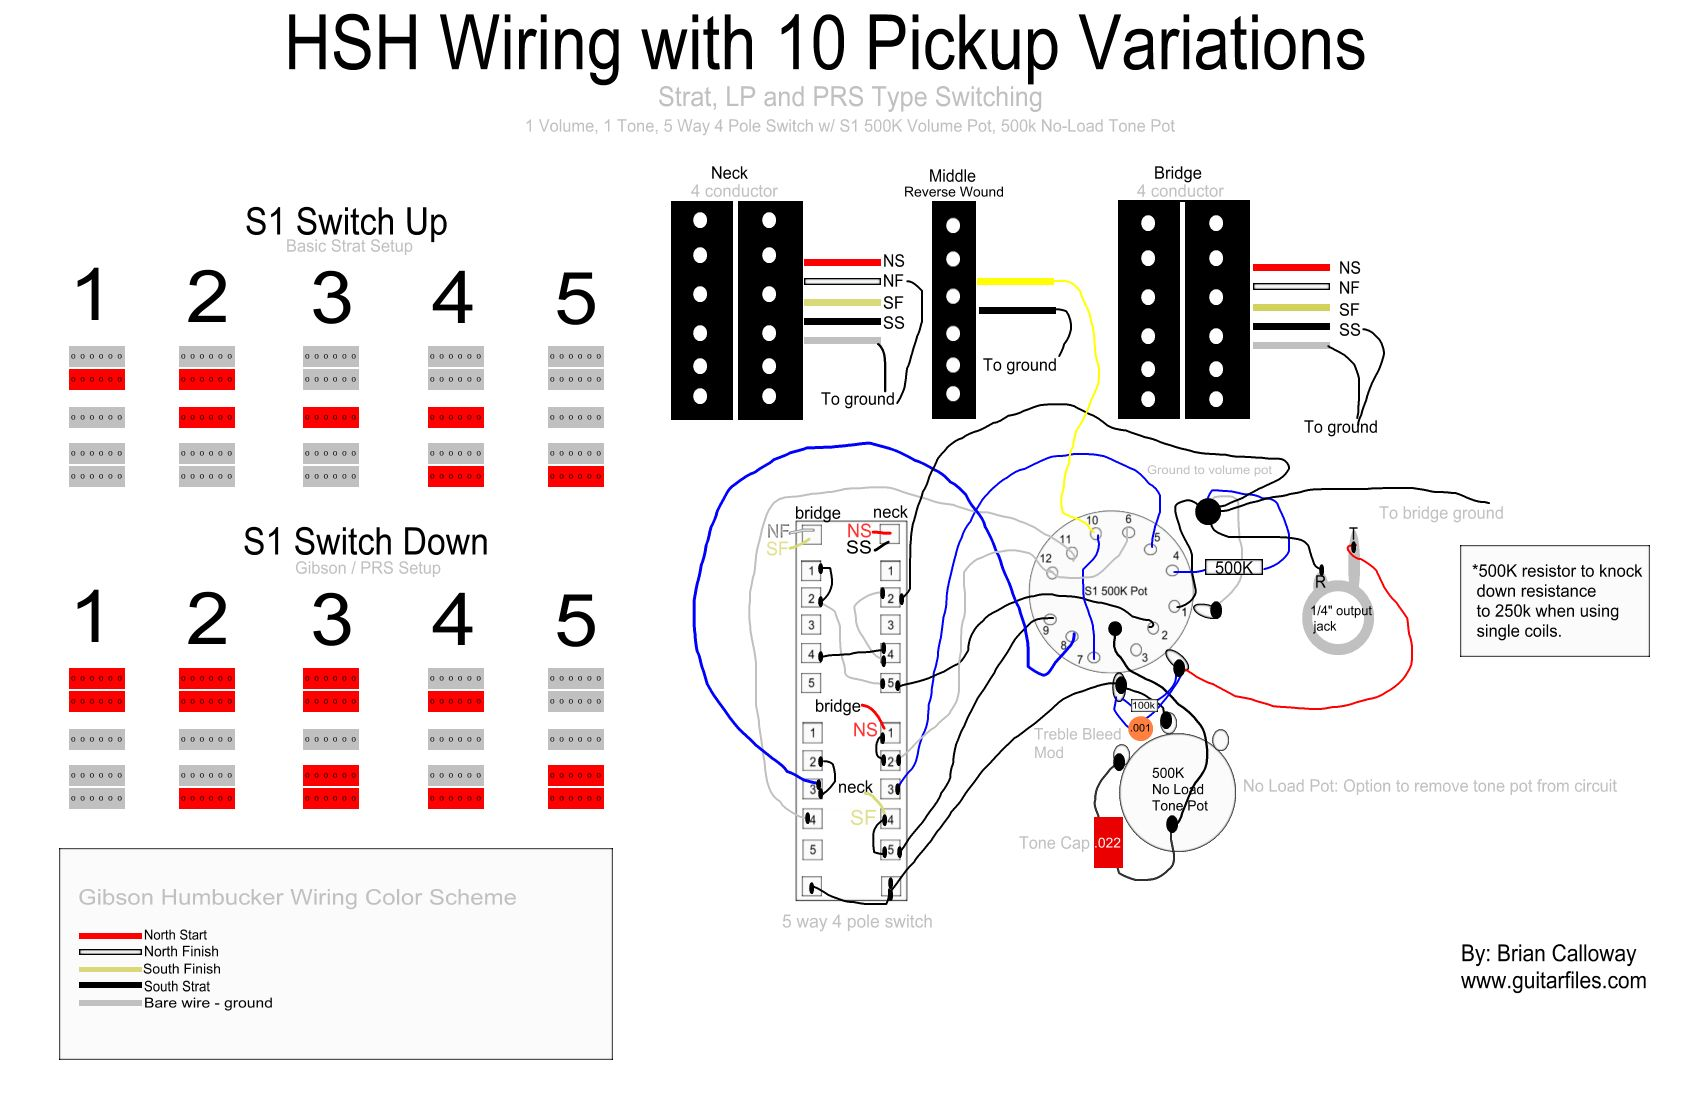 hsh guitar wiring 10 pickup combinations 4 pole switch and s1 switching system diagram by brian calloway [ 1692 x 1115 Pixel ]